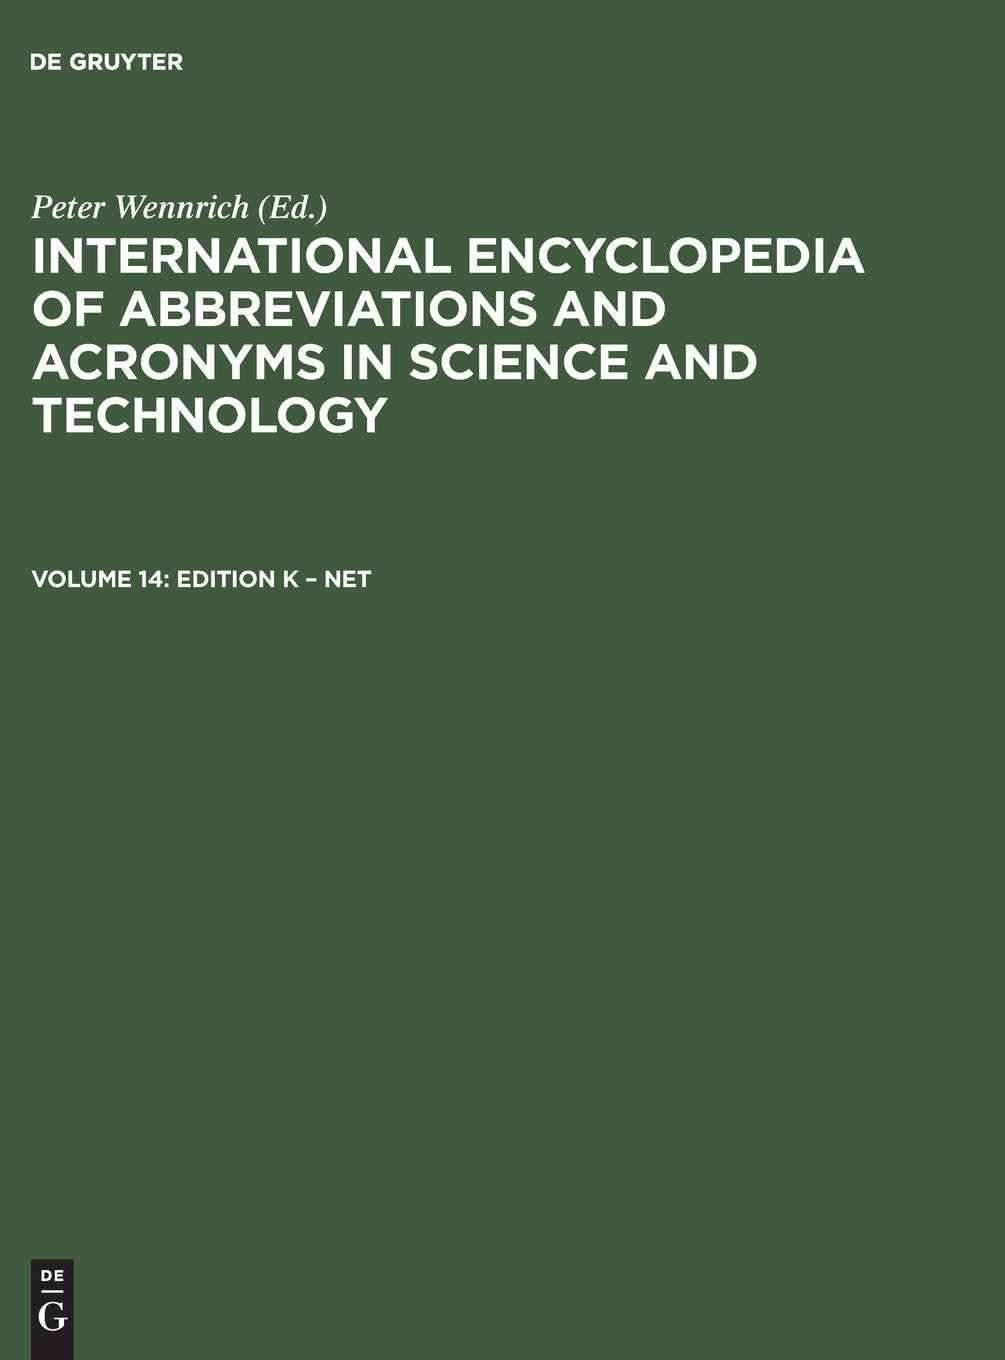 Download International Encyclopedia of Abbreviations and Acronyms in Science and Technology (International Encyclopedia of Abbreviations & Acronyms in Science & Technology (2 Vol.)) ePub fb2 book